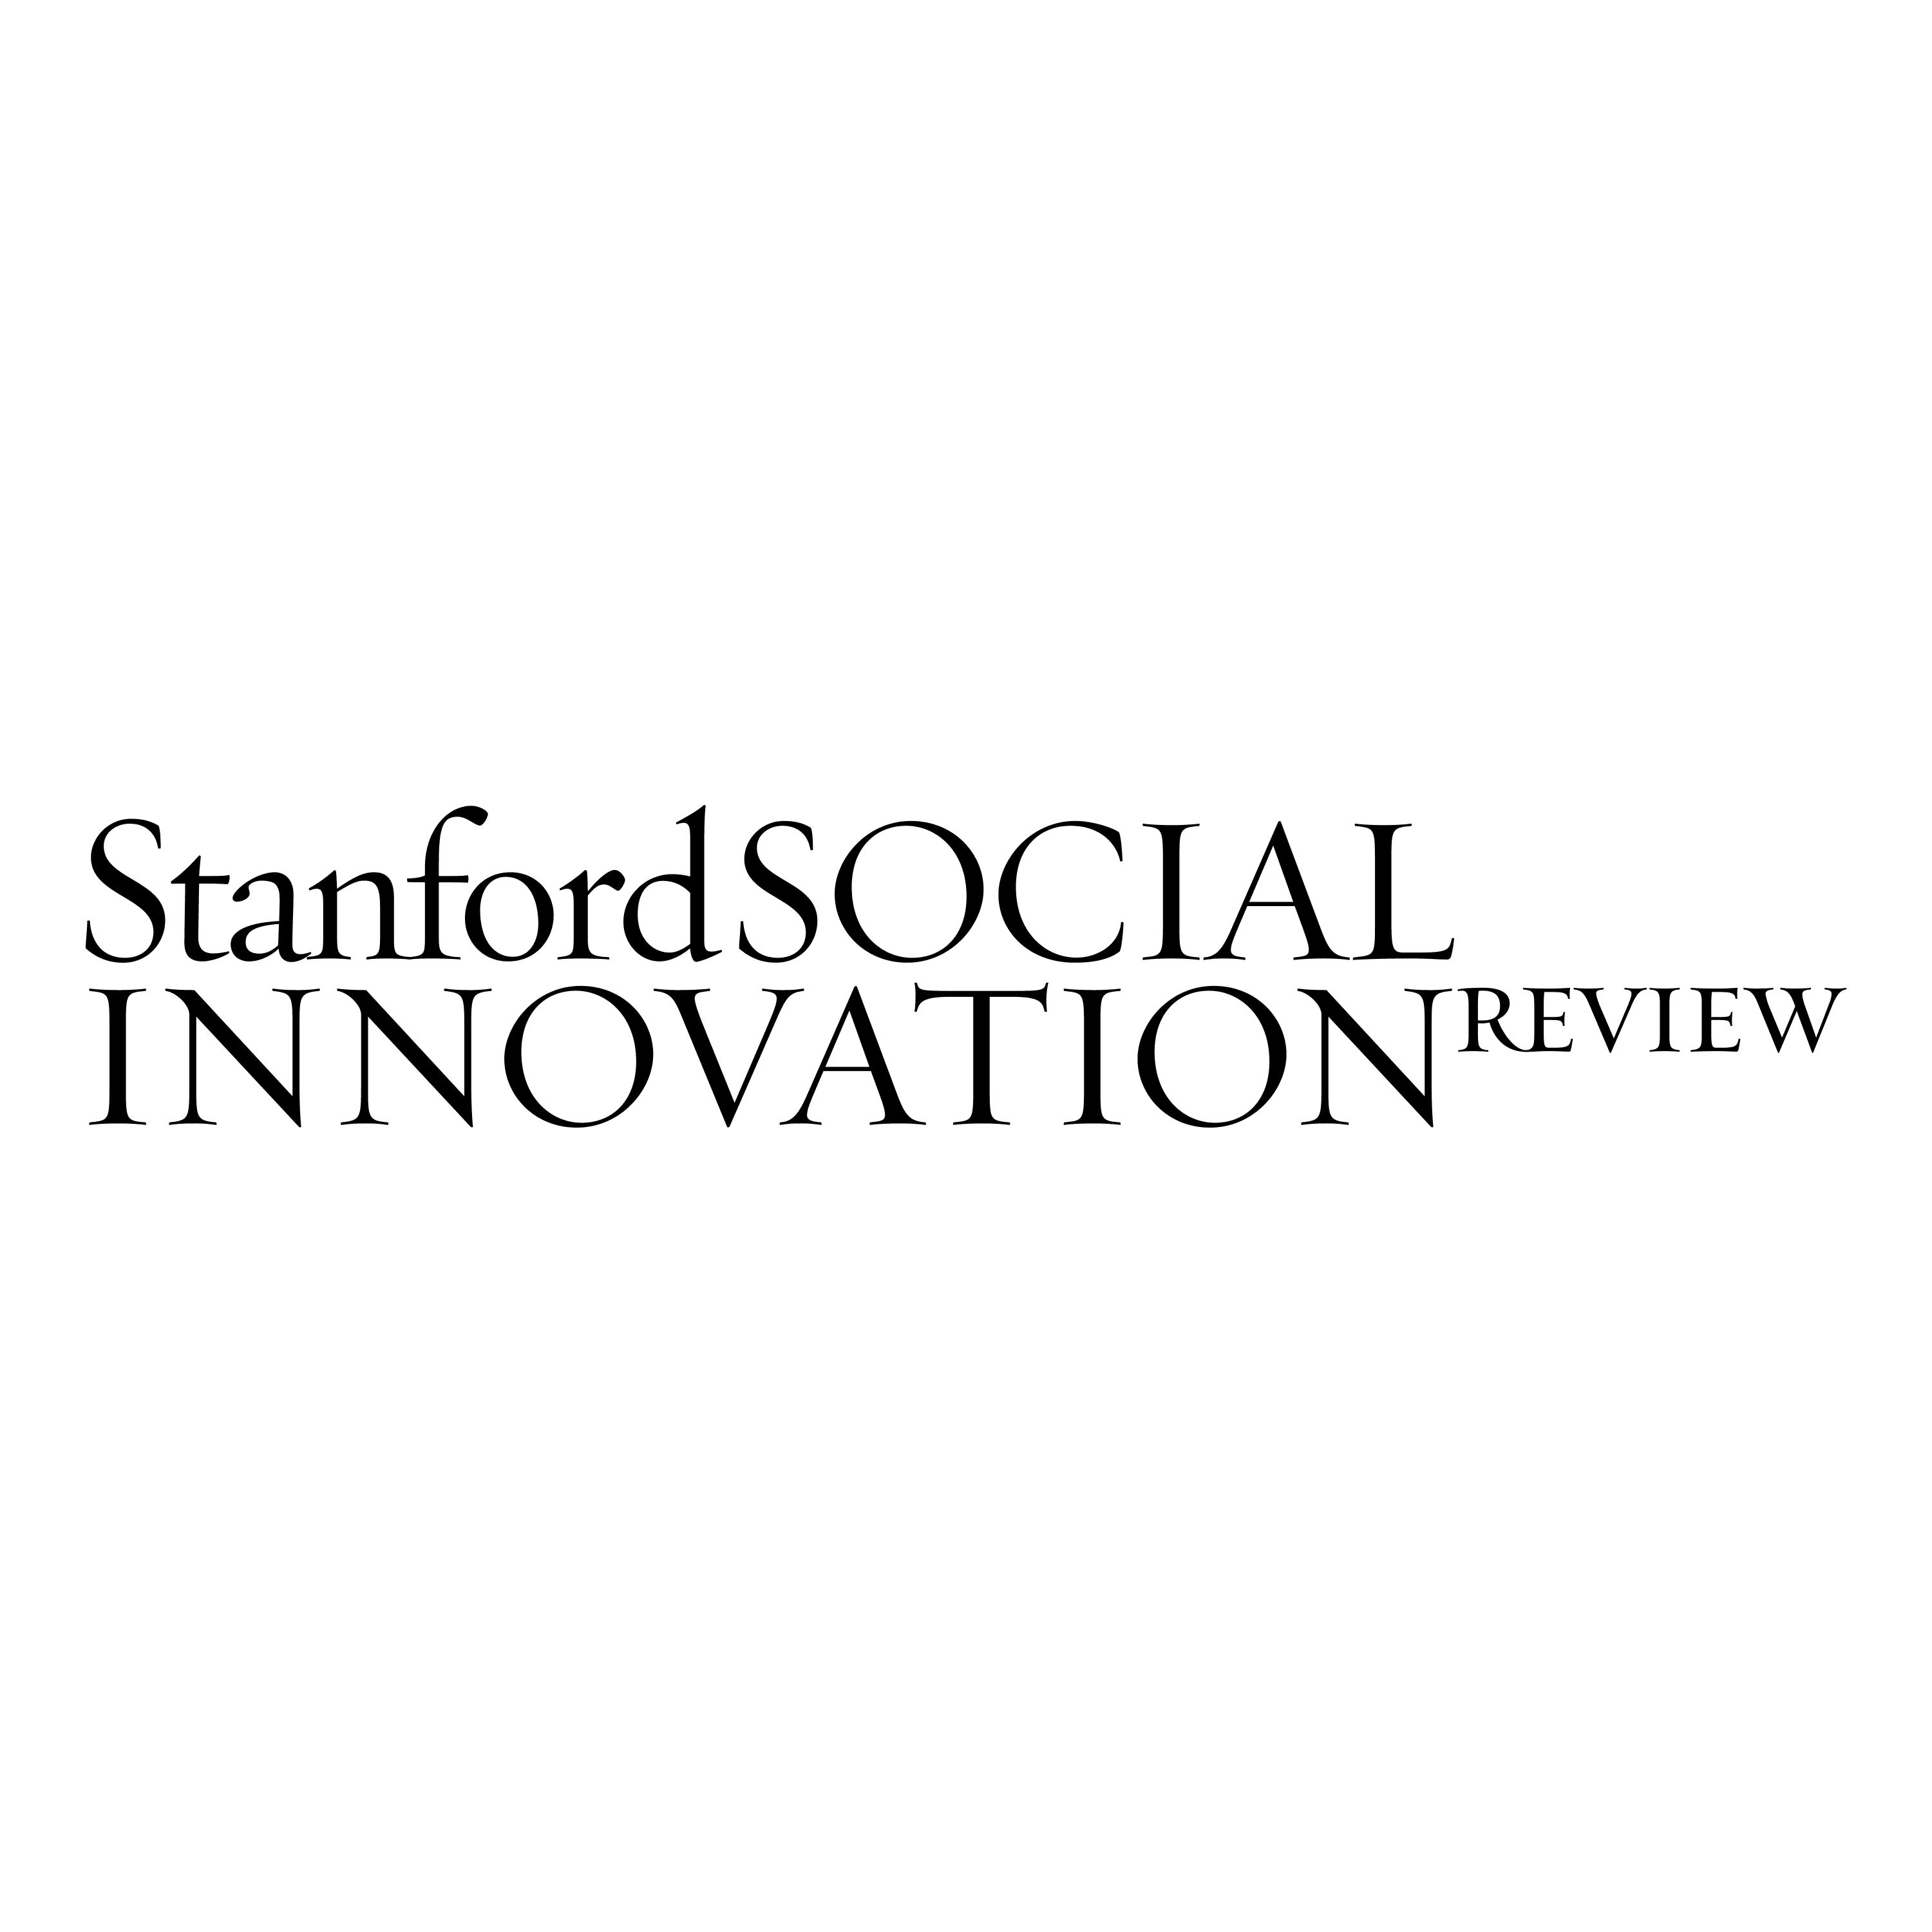 Stanford Social Innovation Review Podcast by Stanford Social Innovation Review SSIR on Apple Podcasts